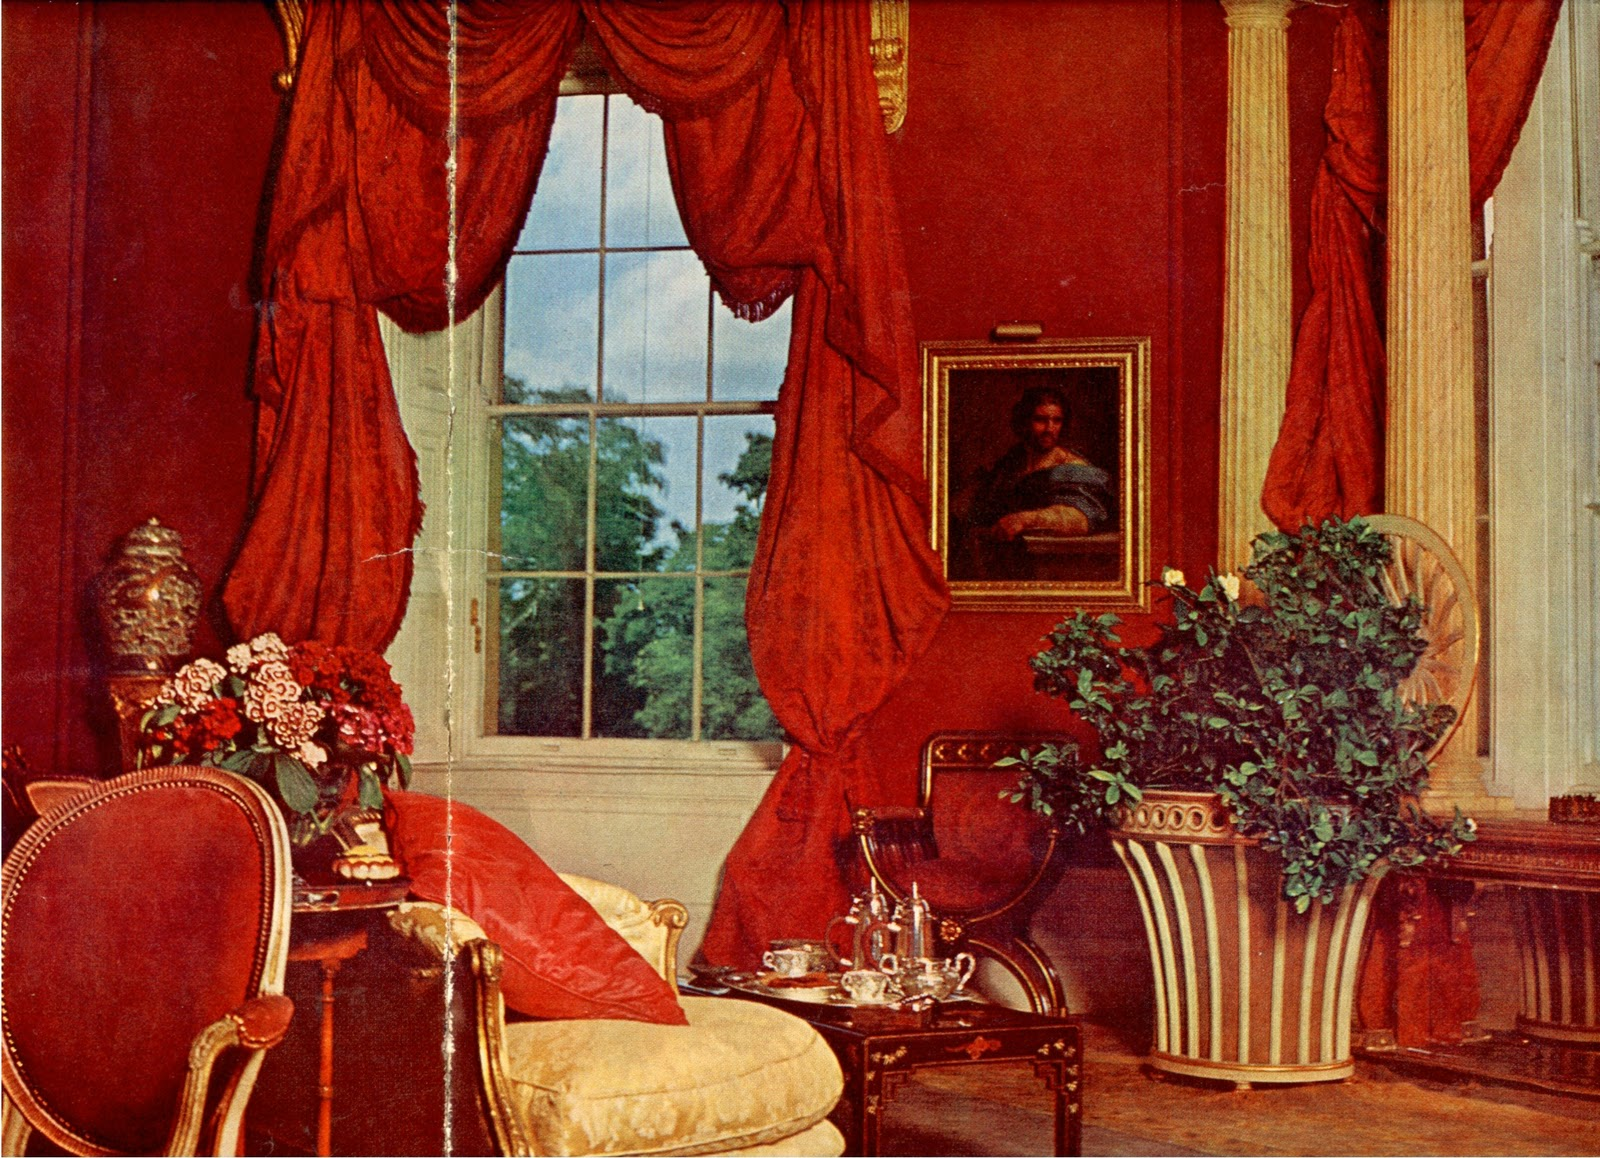 Red Rooms Decorating Story Of My Life In Praise Of The Red Room Lesley Blanch